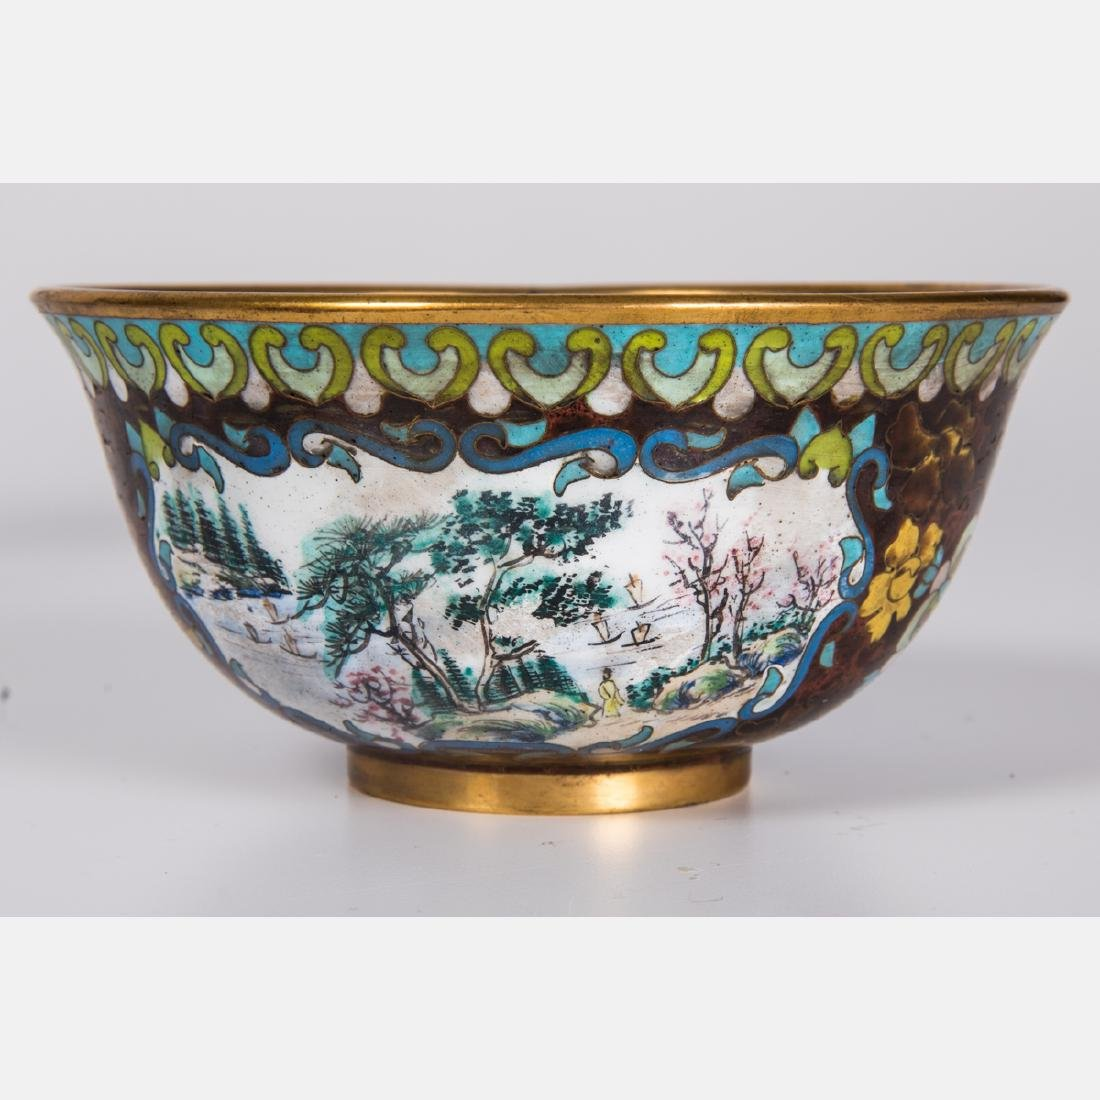 A Group of Eight Chinese Cloisonné and Enameled - 3